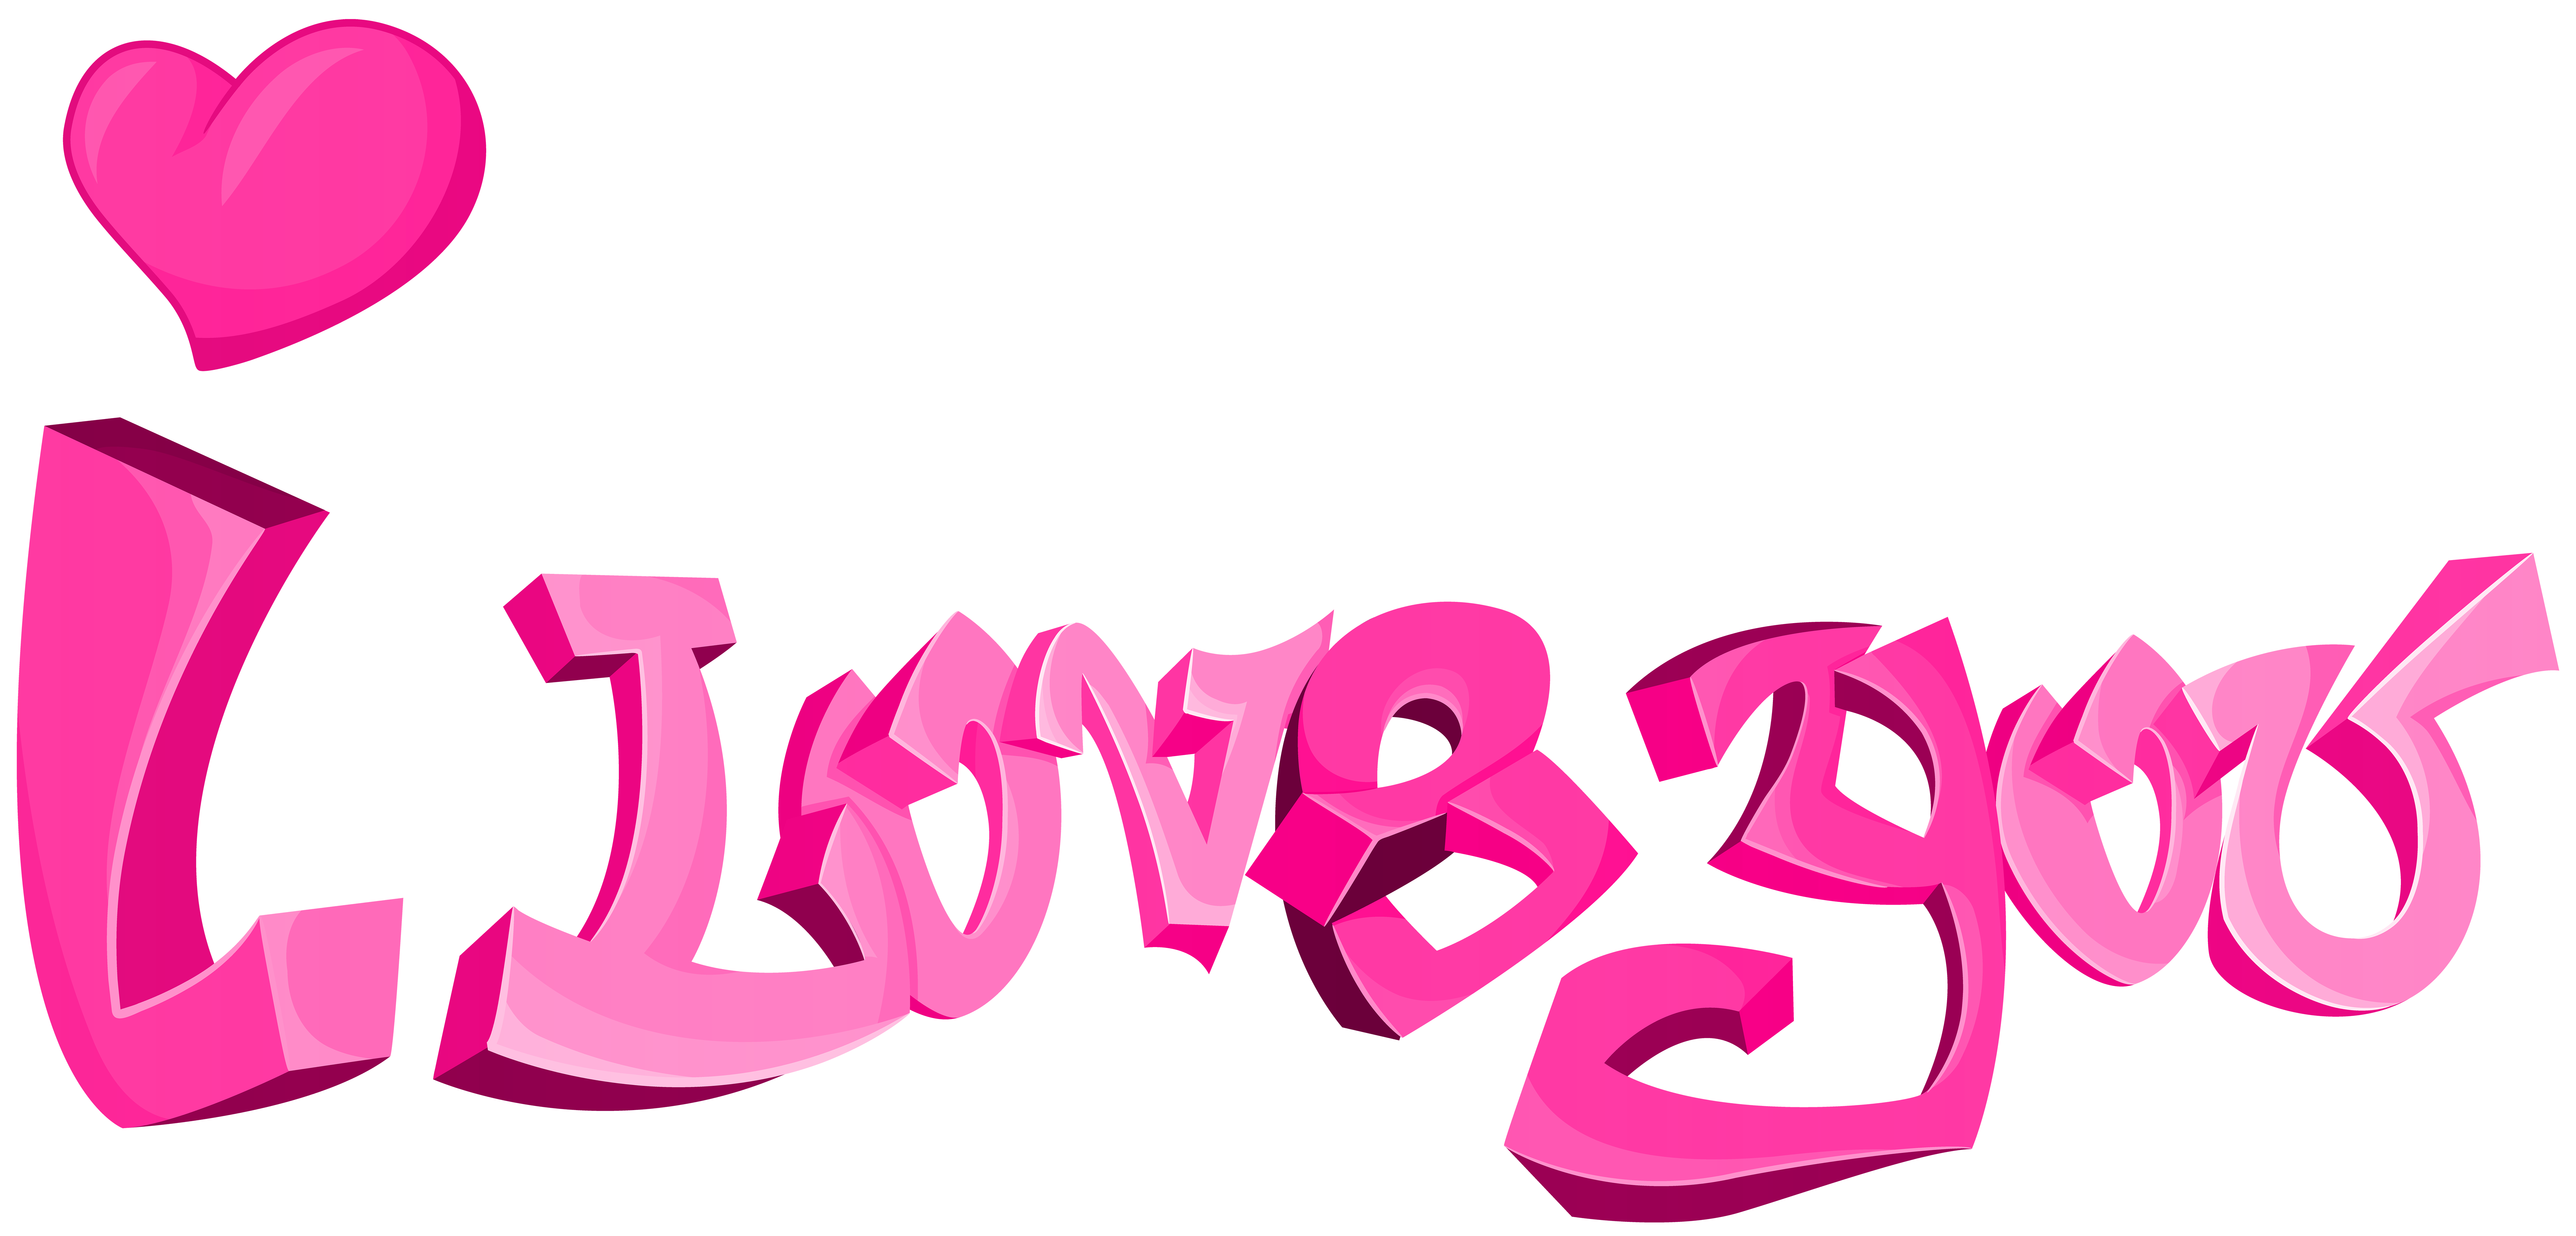 8000x3838 I Love You Png Transparent Clip Artu200b Gallery Yopriceville